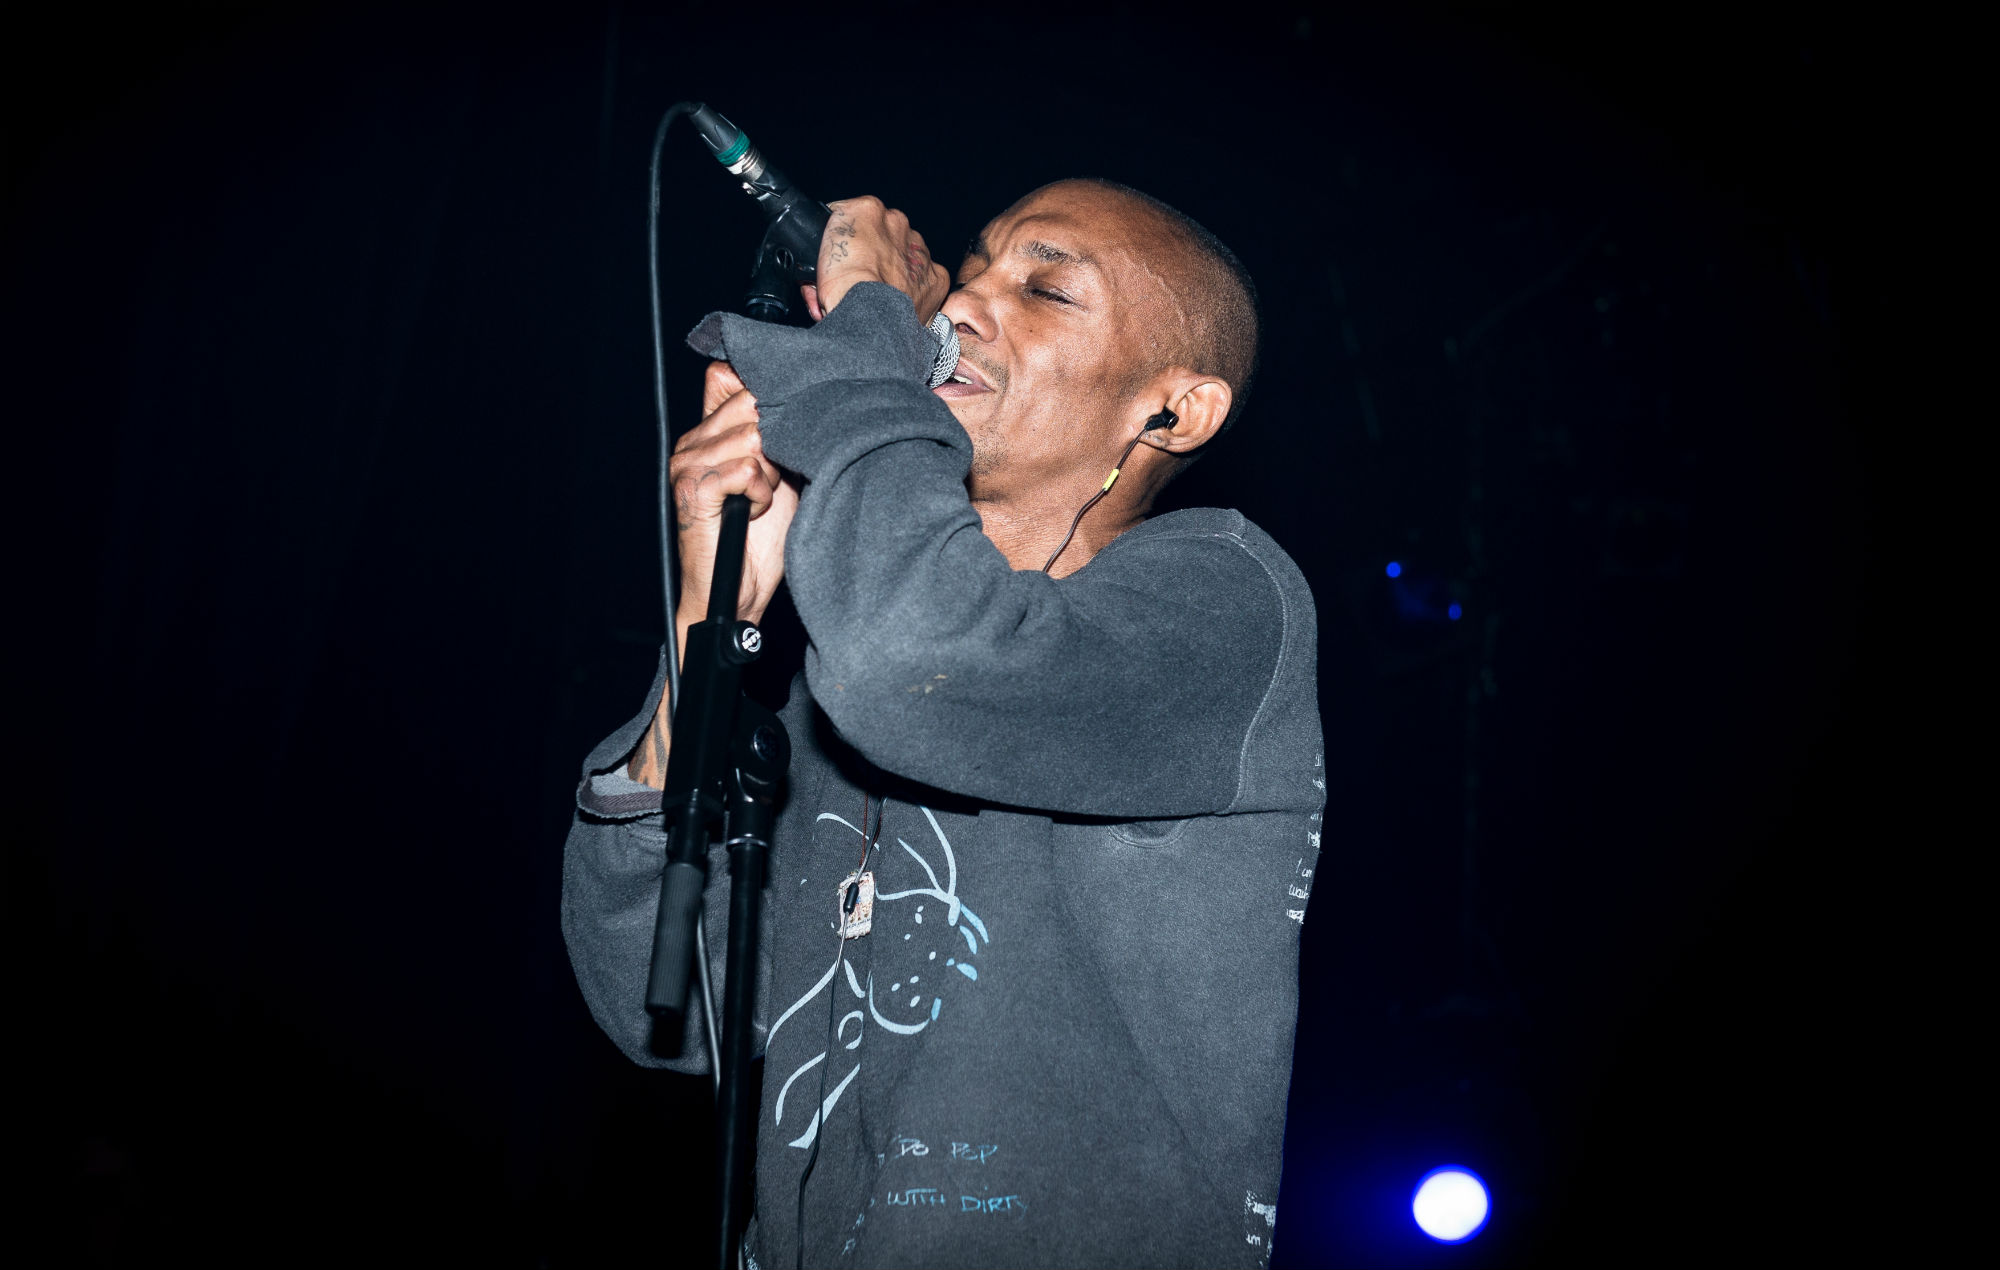 Tricky announces '20,20' EP and shares single 'Lonely Dancer'